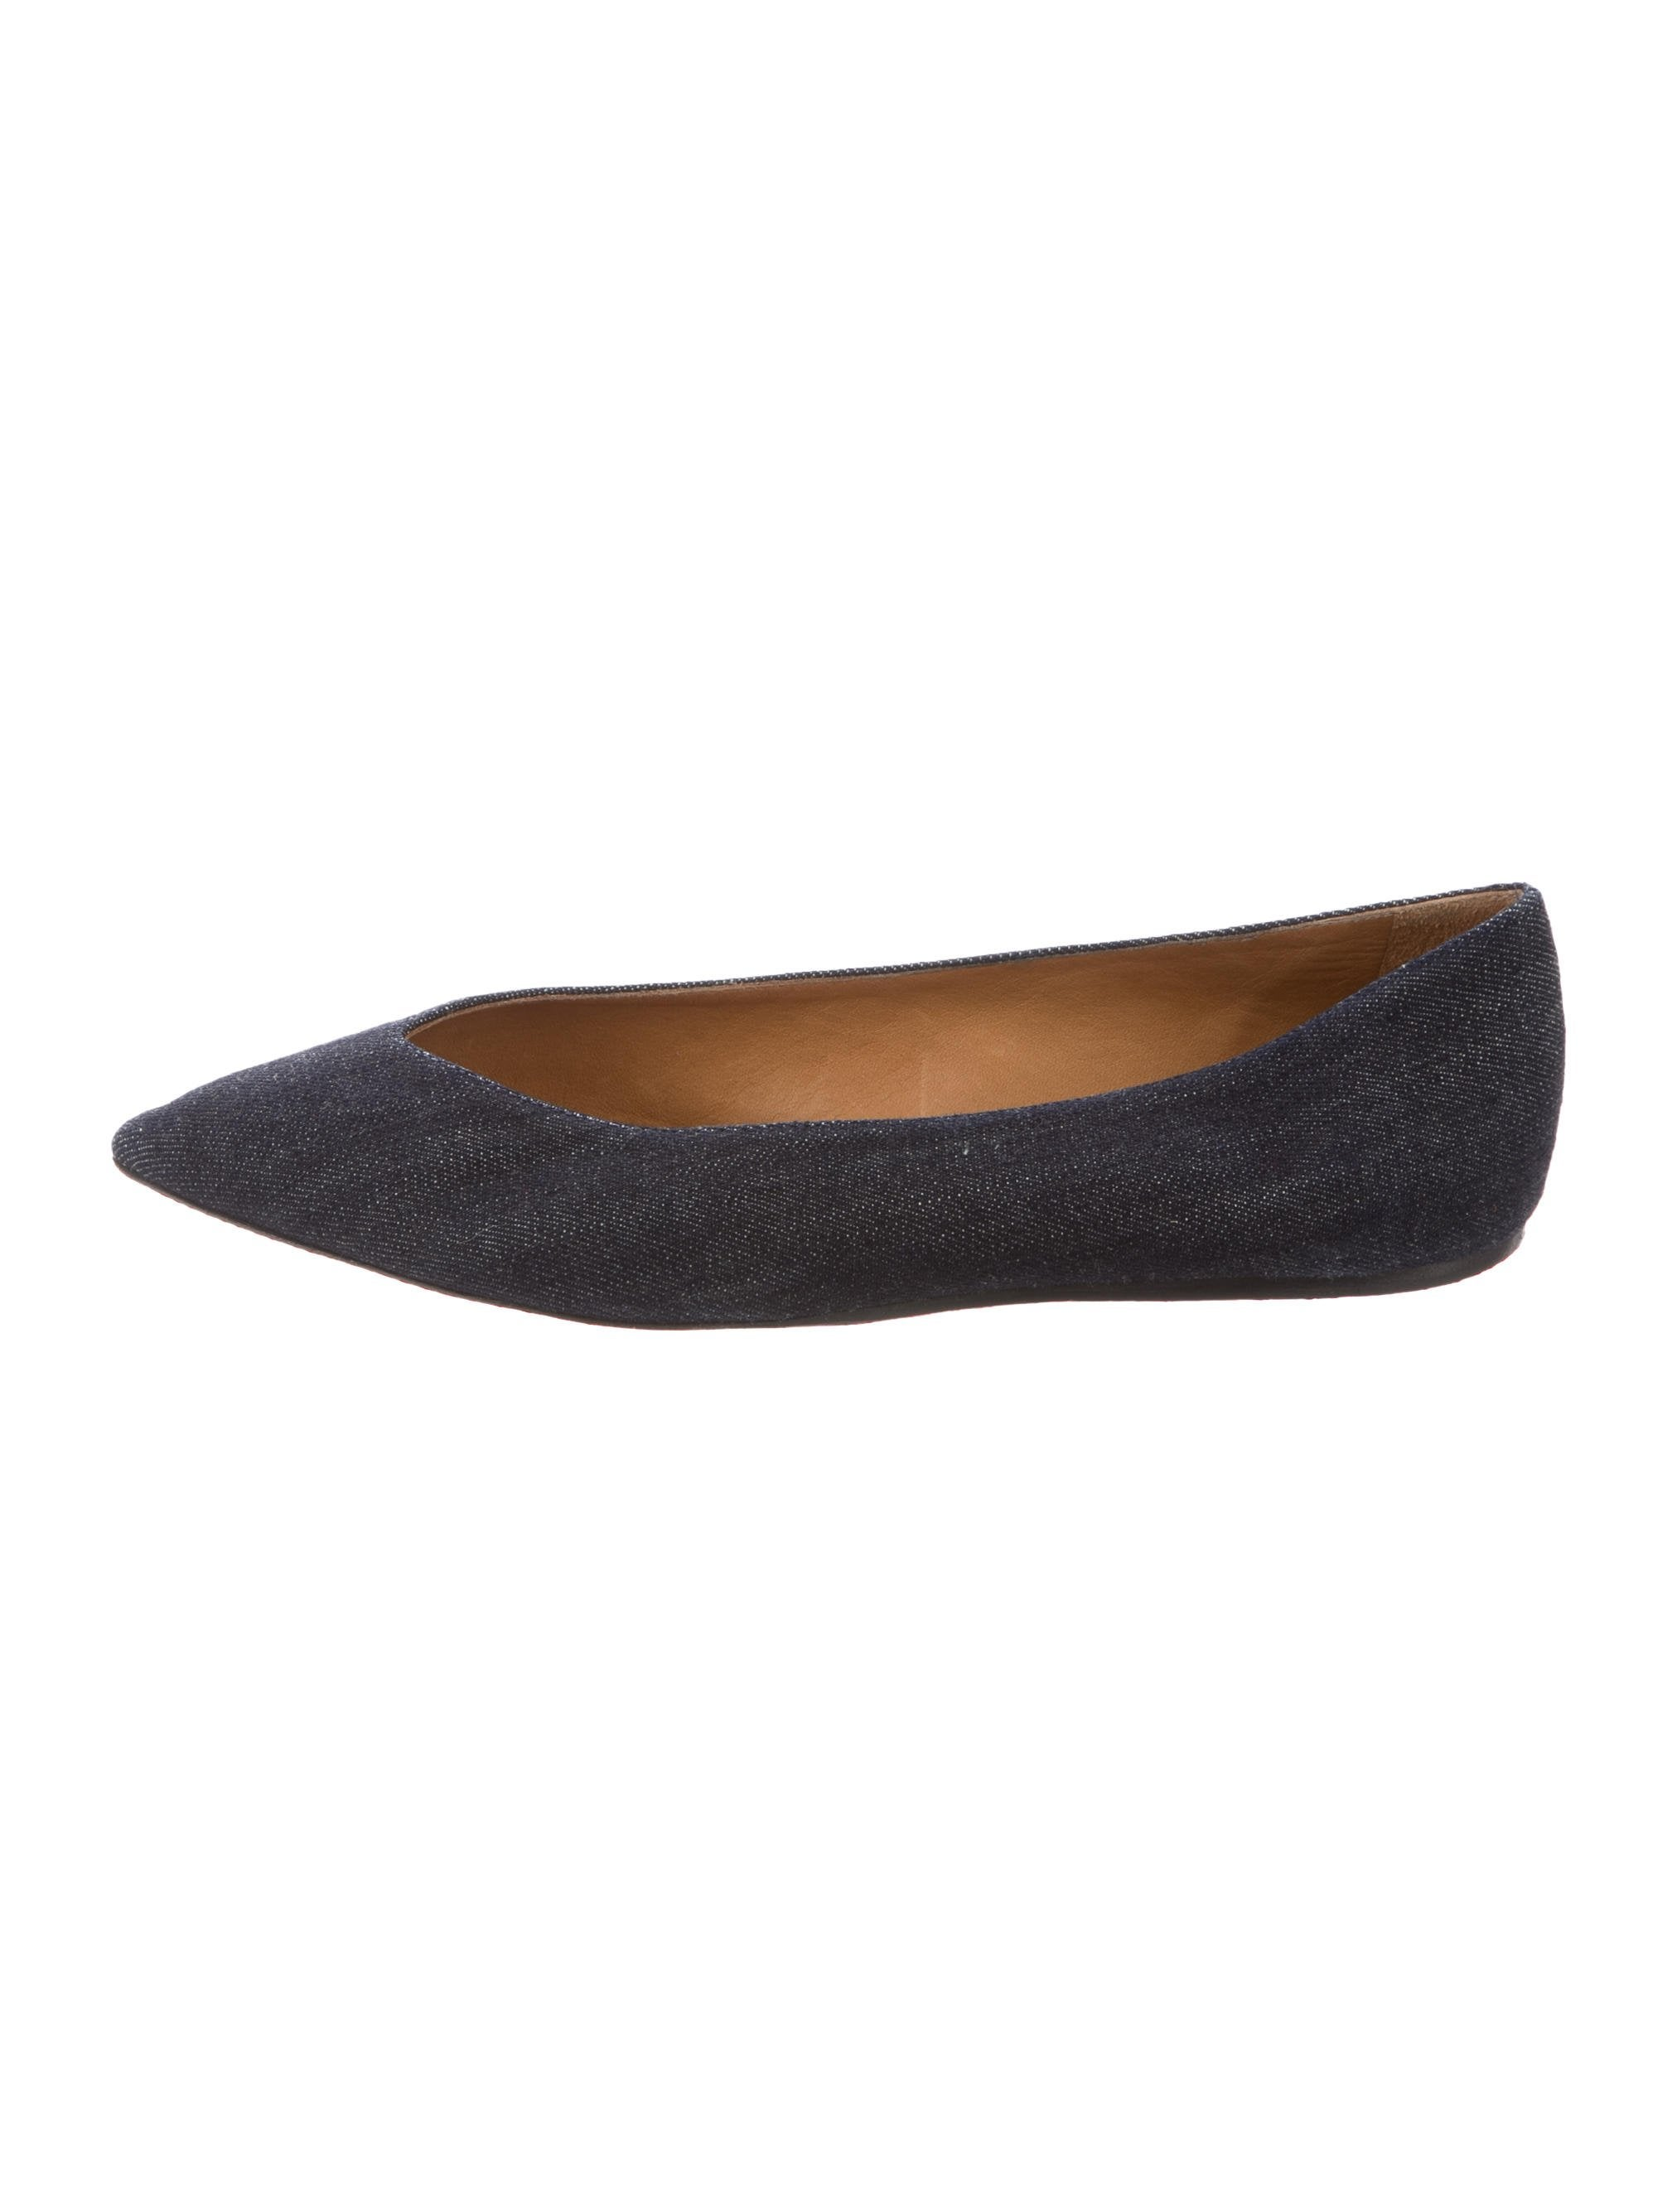 Isabel Marant Denim Pointed-Toe Flats